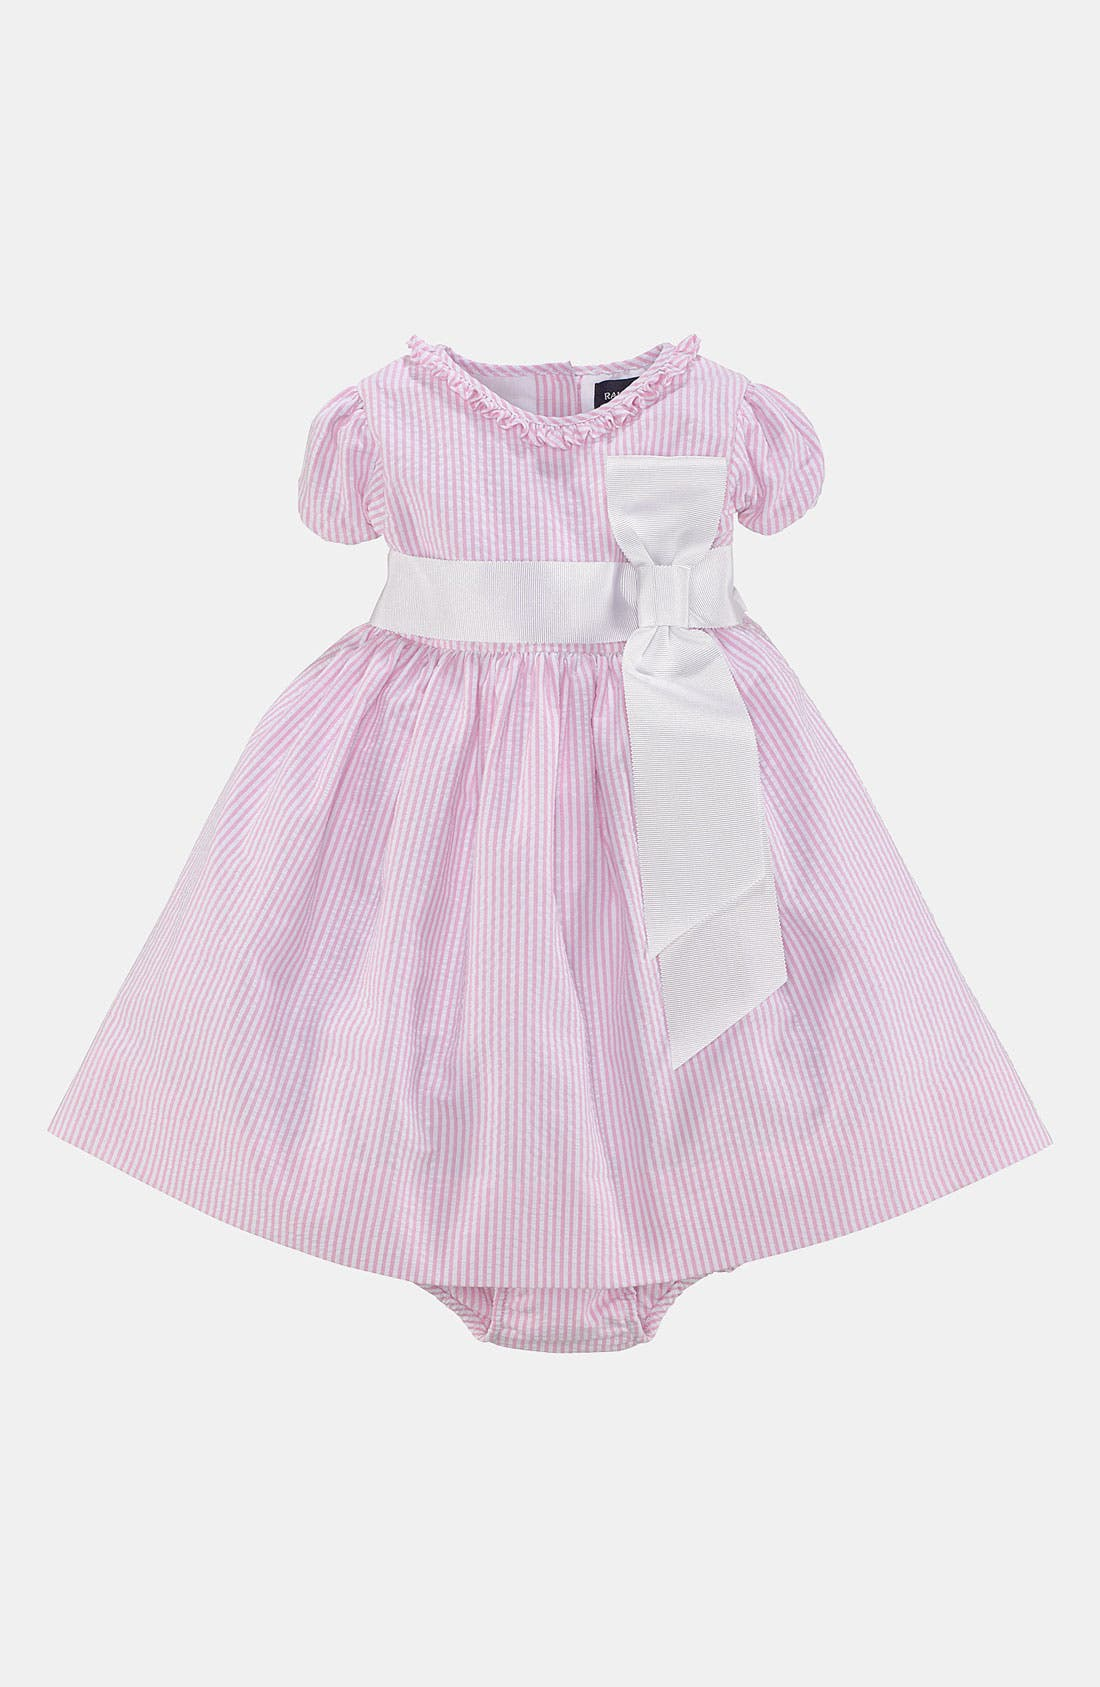 Main Image - Ralph Lauren Seersucker Dress & Bloomers (Baby Girls)